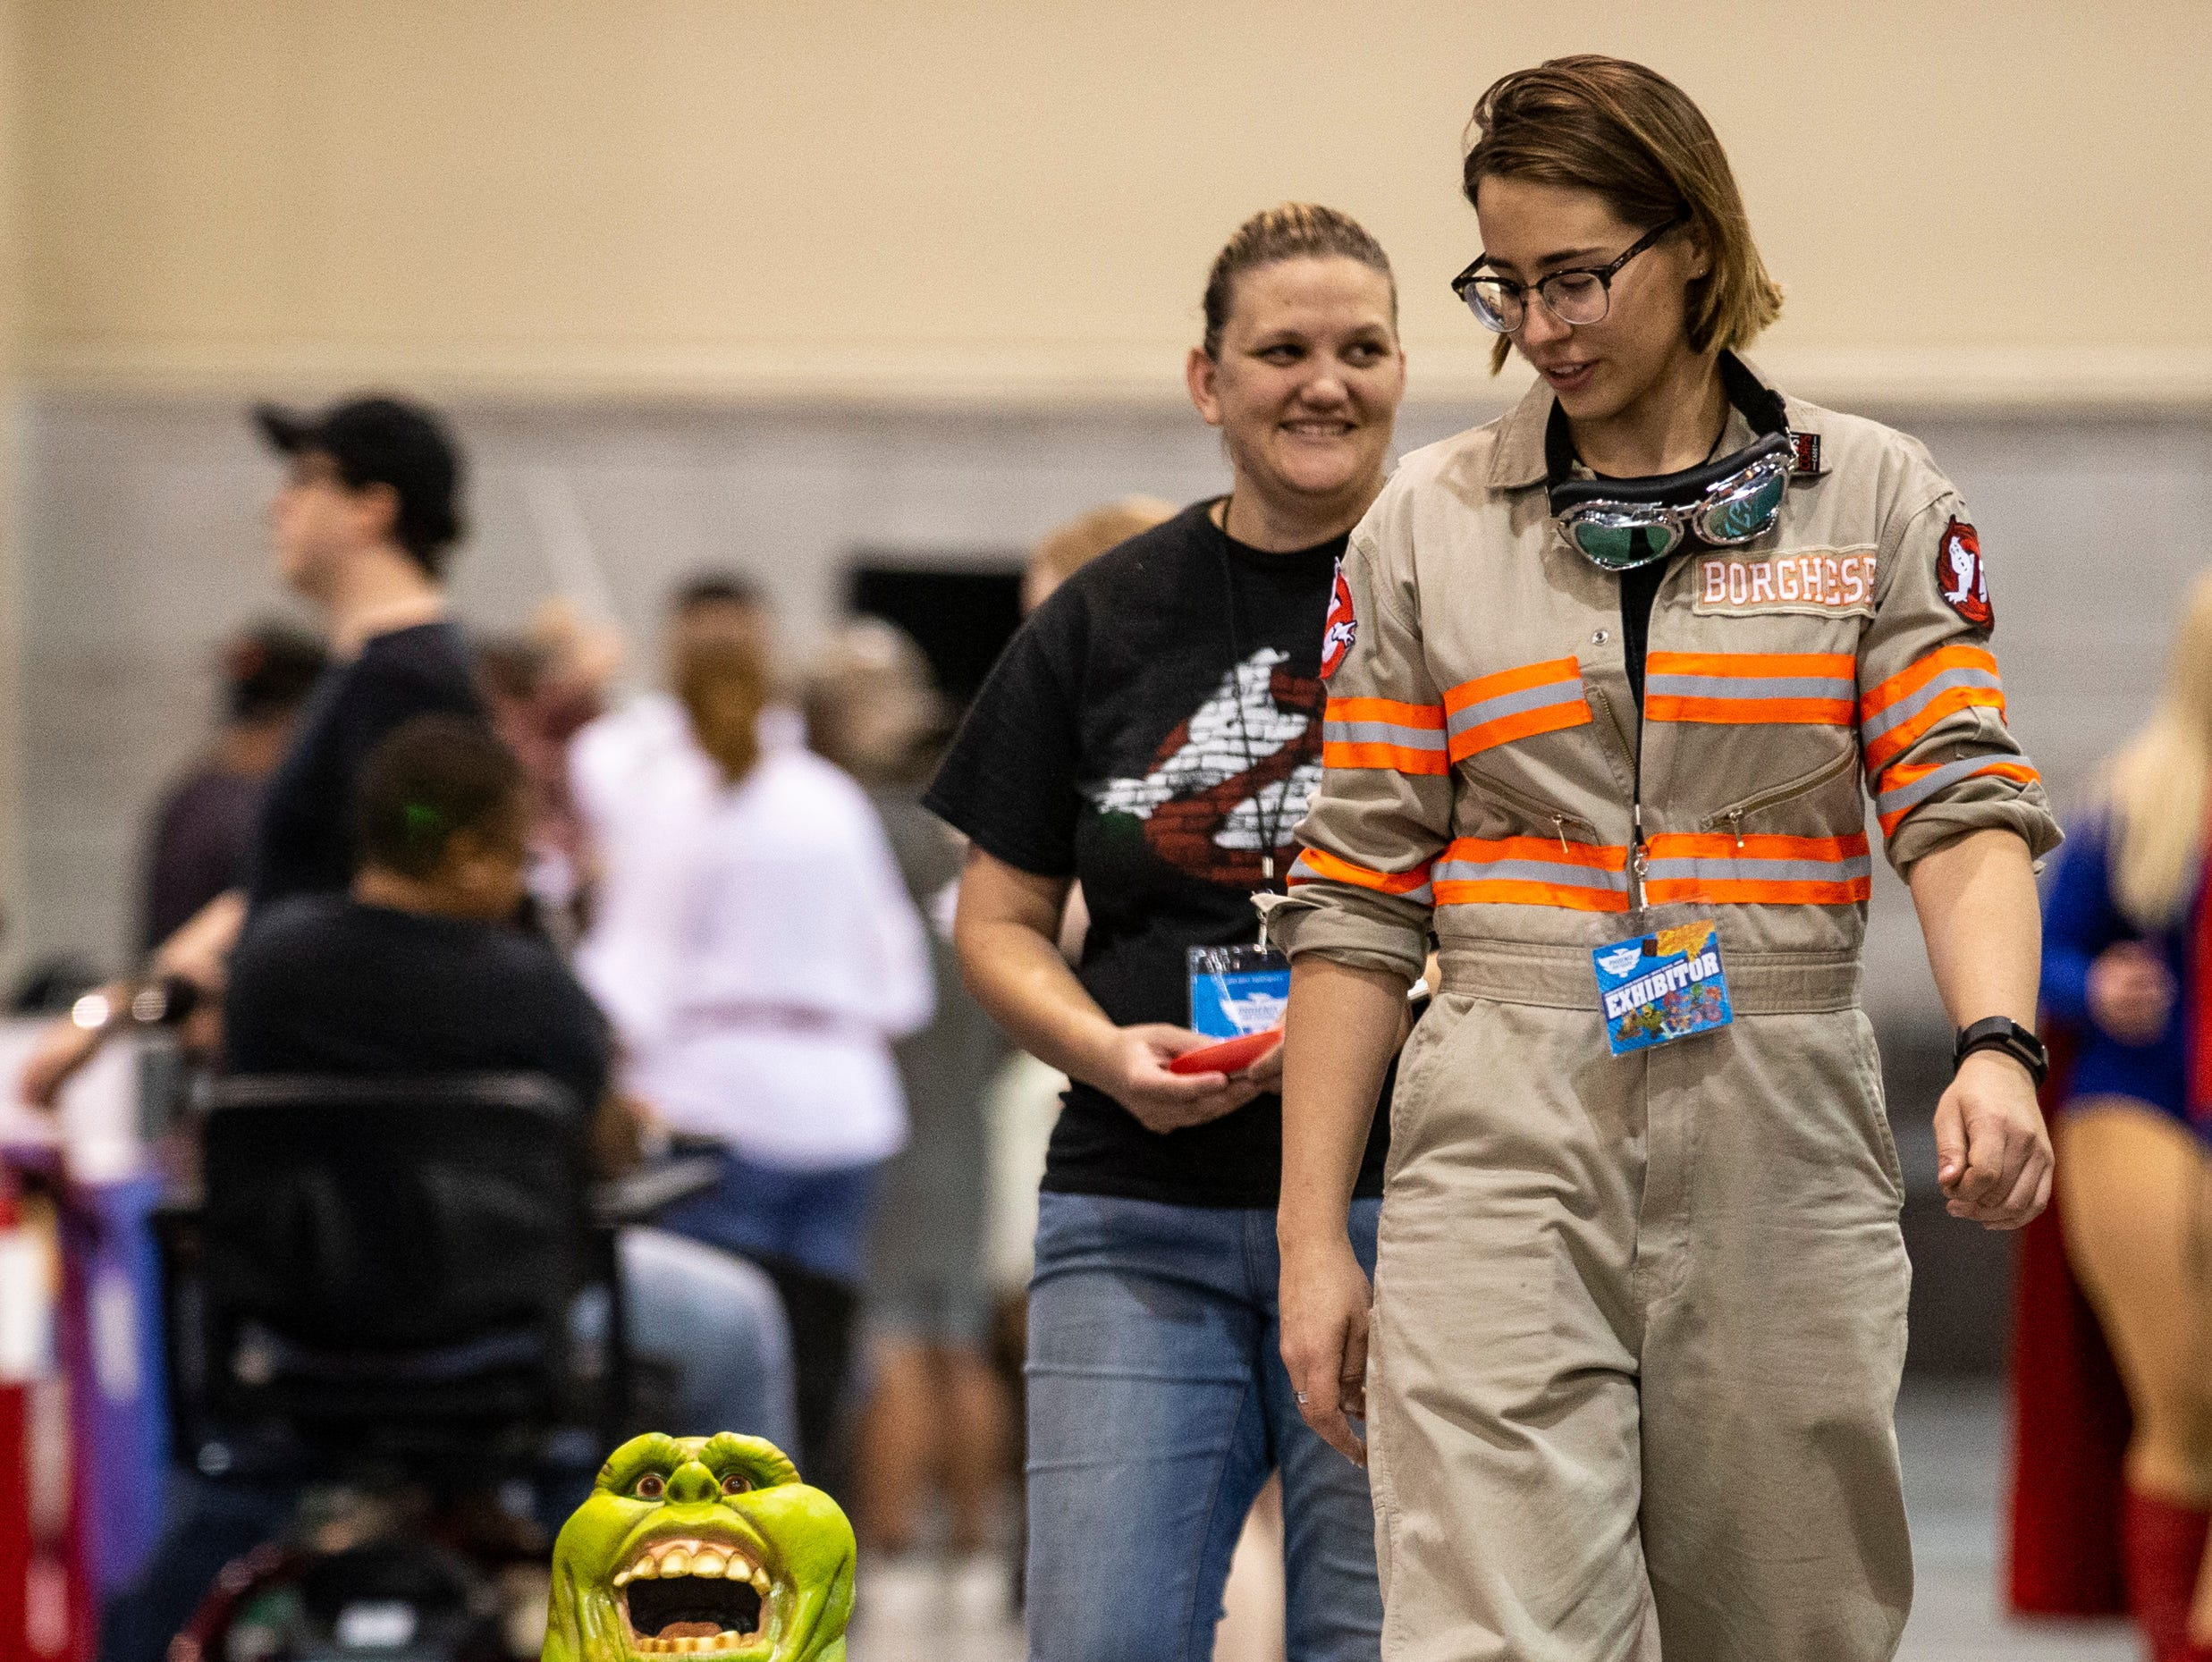 RJ Russell (left) and Desiree Borghese drive Slimer around during Day 1 of Phoenix Fan Fusion on May 23, 2019, at the Phoenix Convention Center.